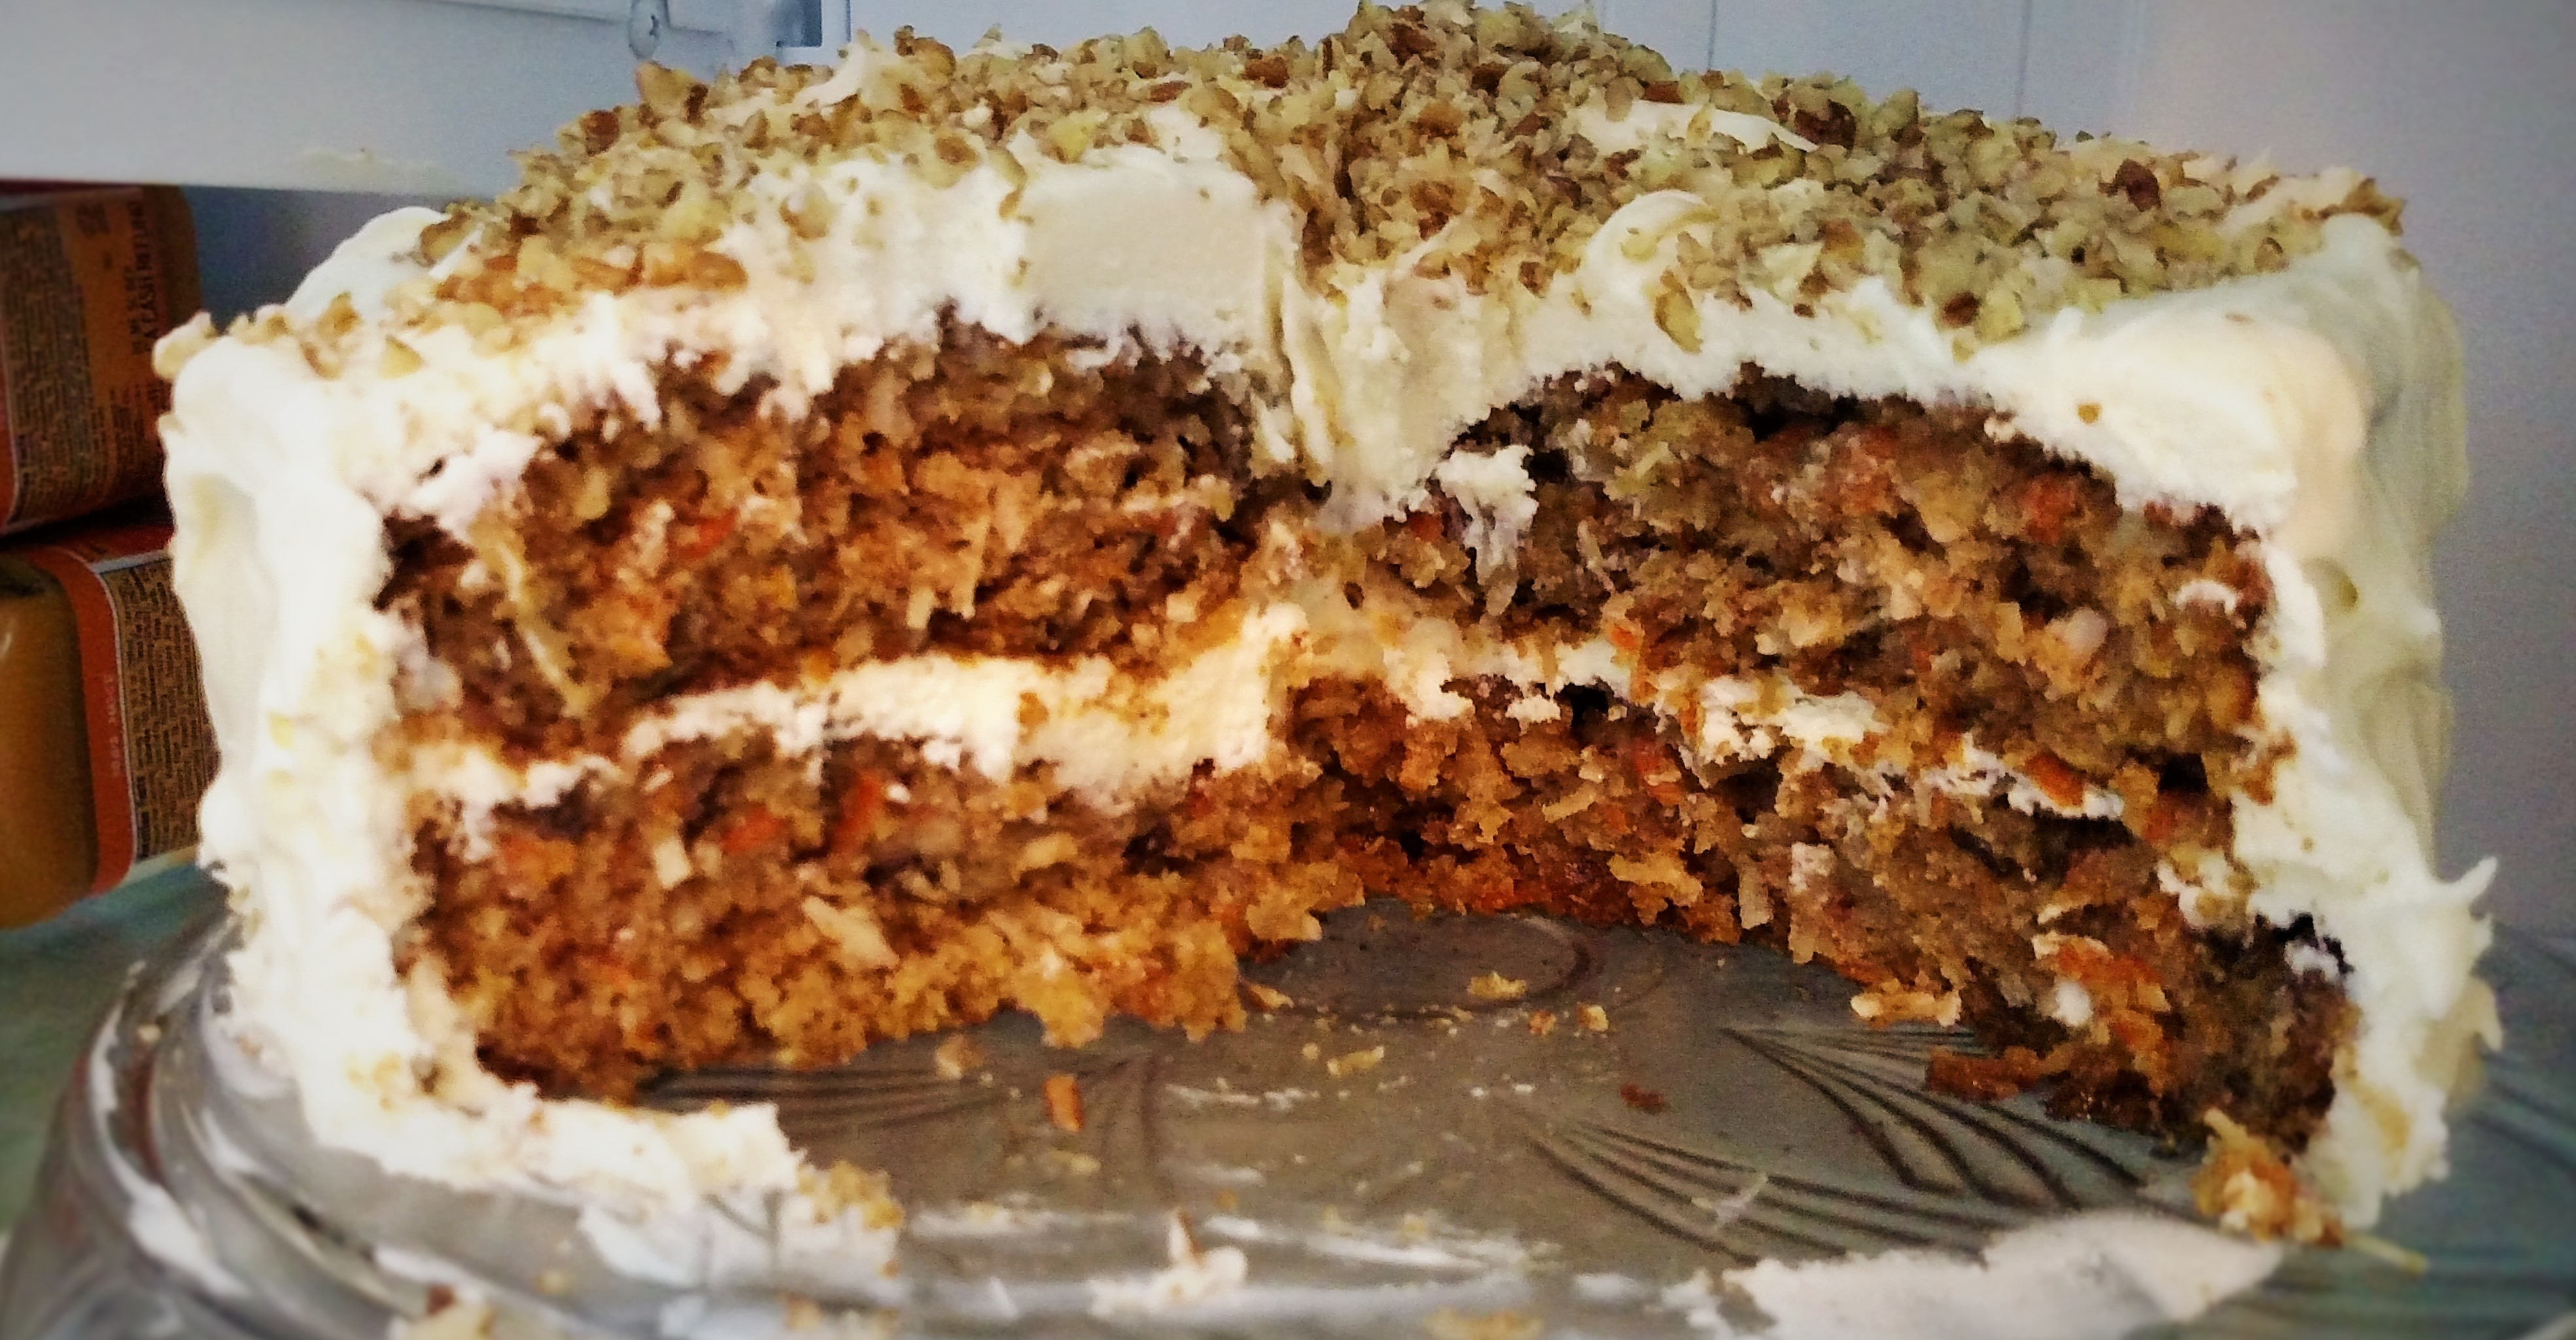 How To Make Super Awesome Carrot Cake